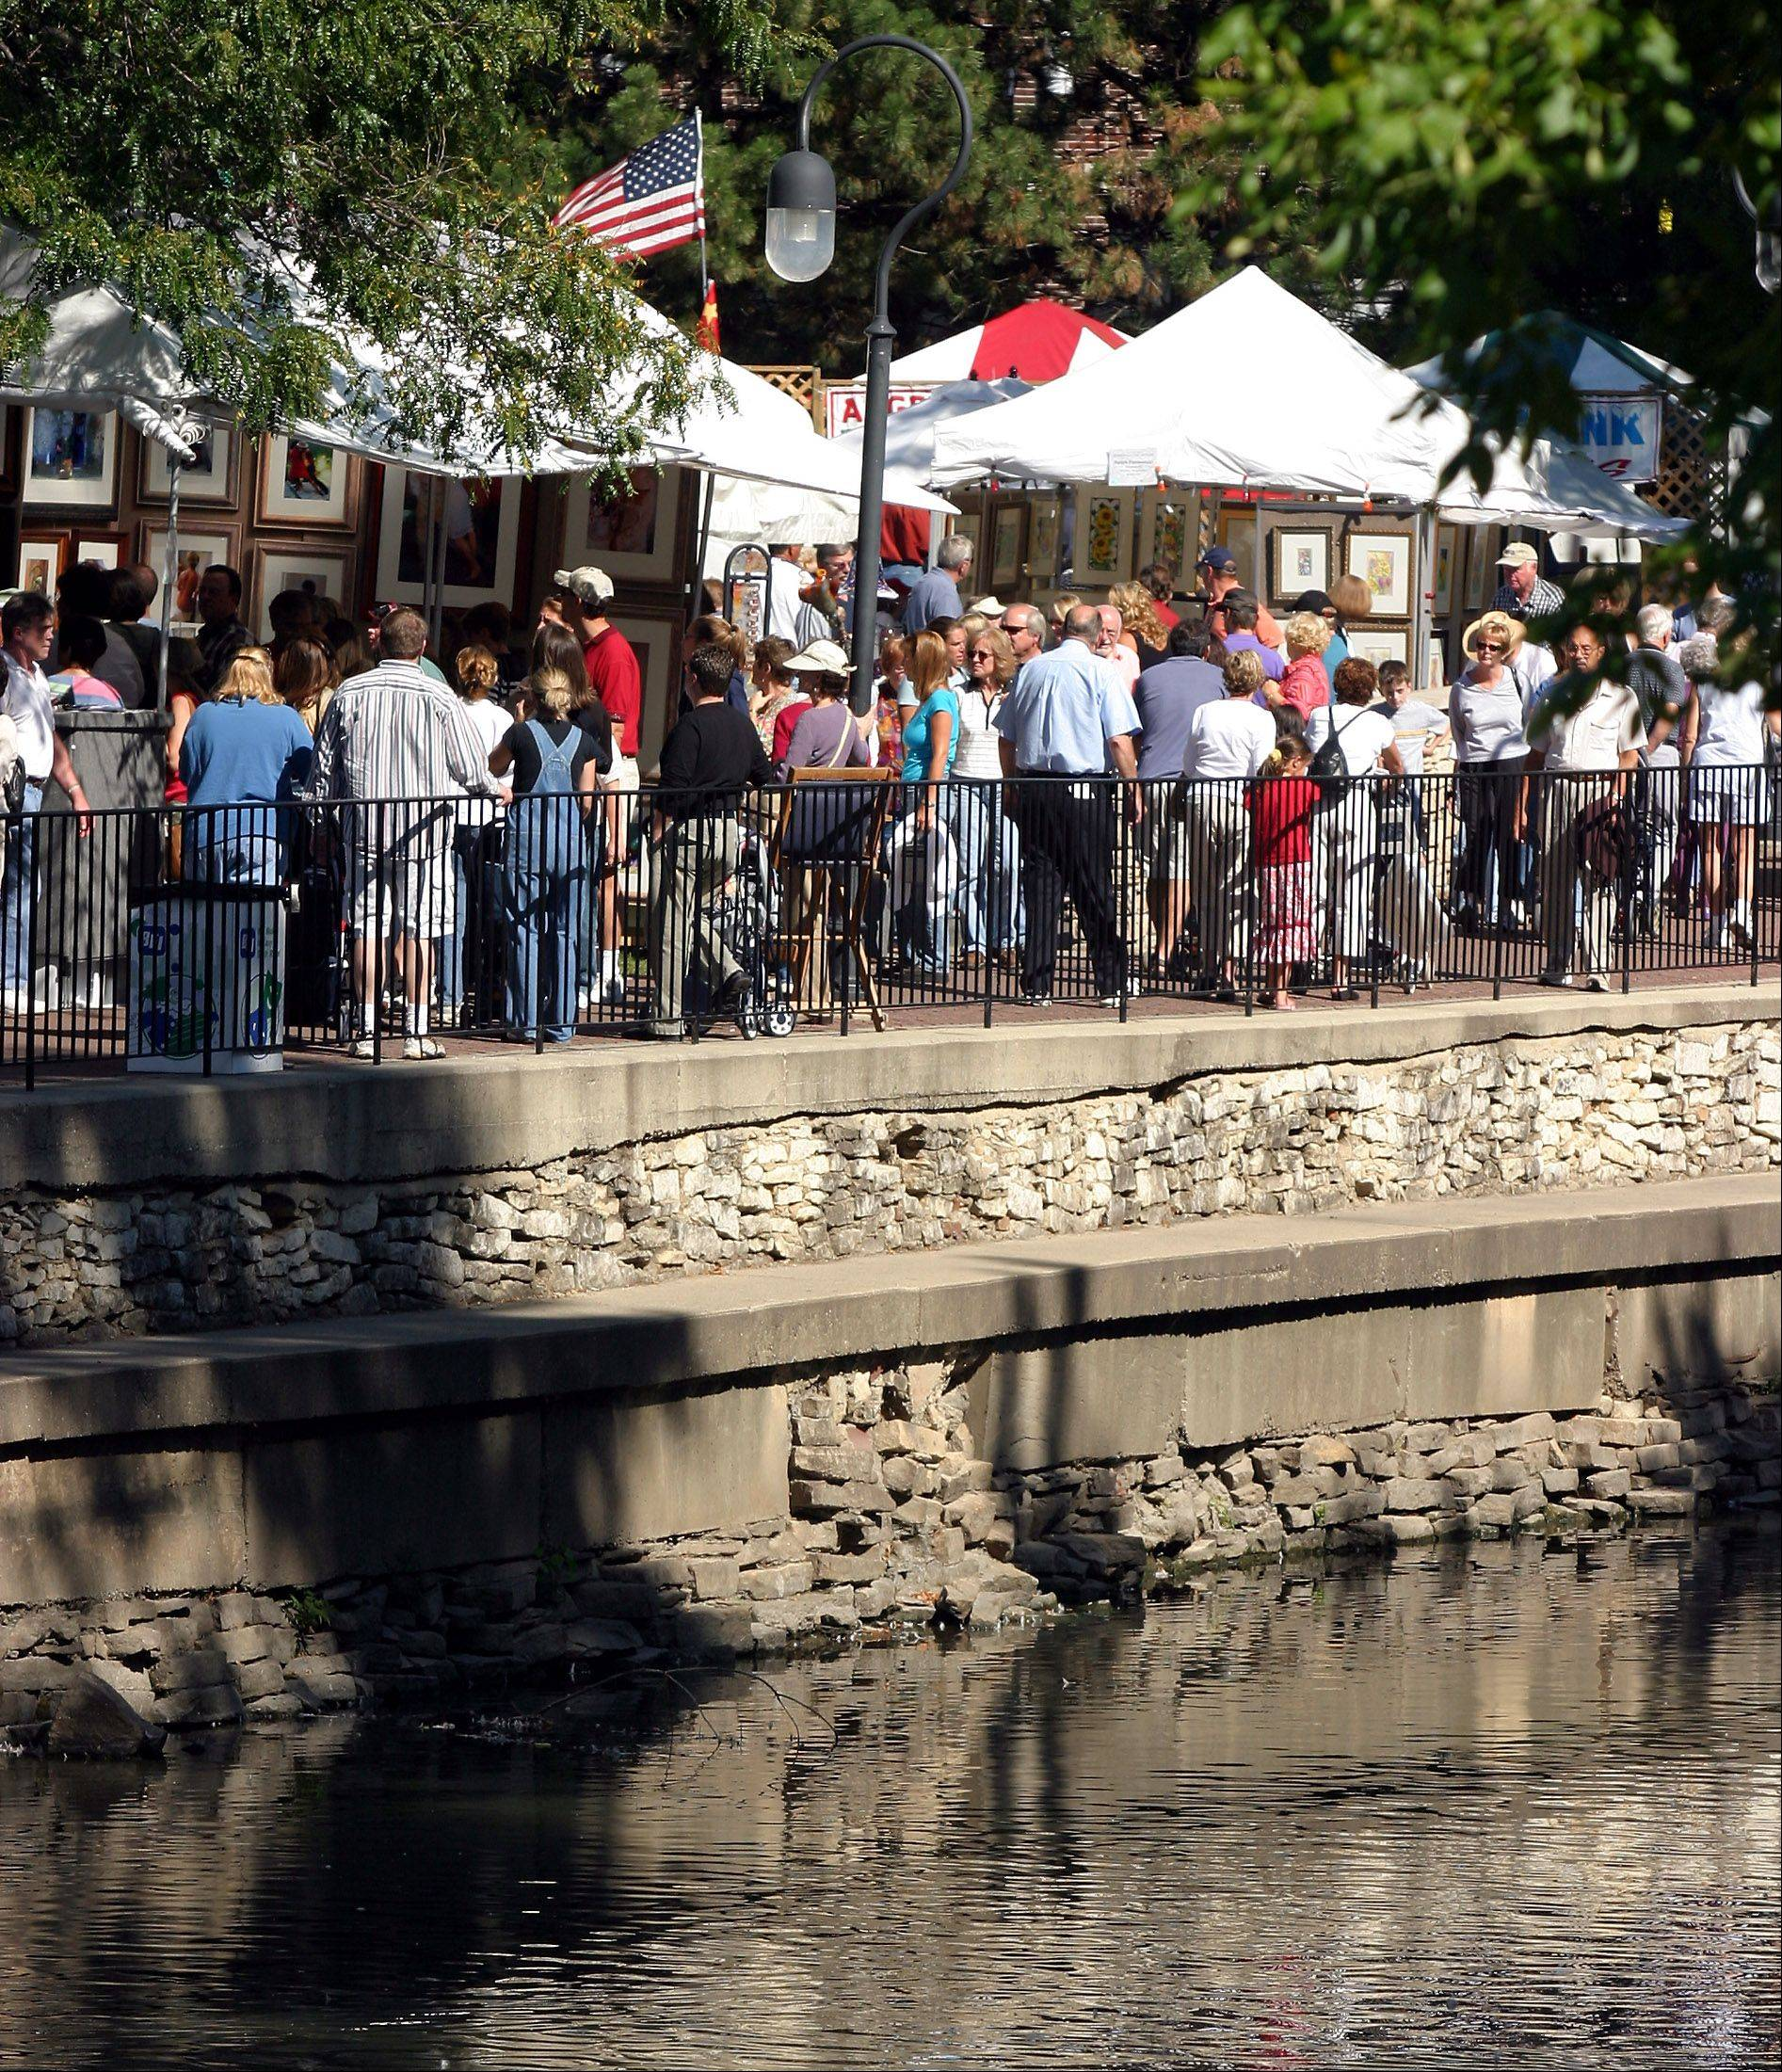 The Naperville Riverwalk setting helps create an ambience for the Riverwalk Fine Art Fair that draws both artists and visitors.